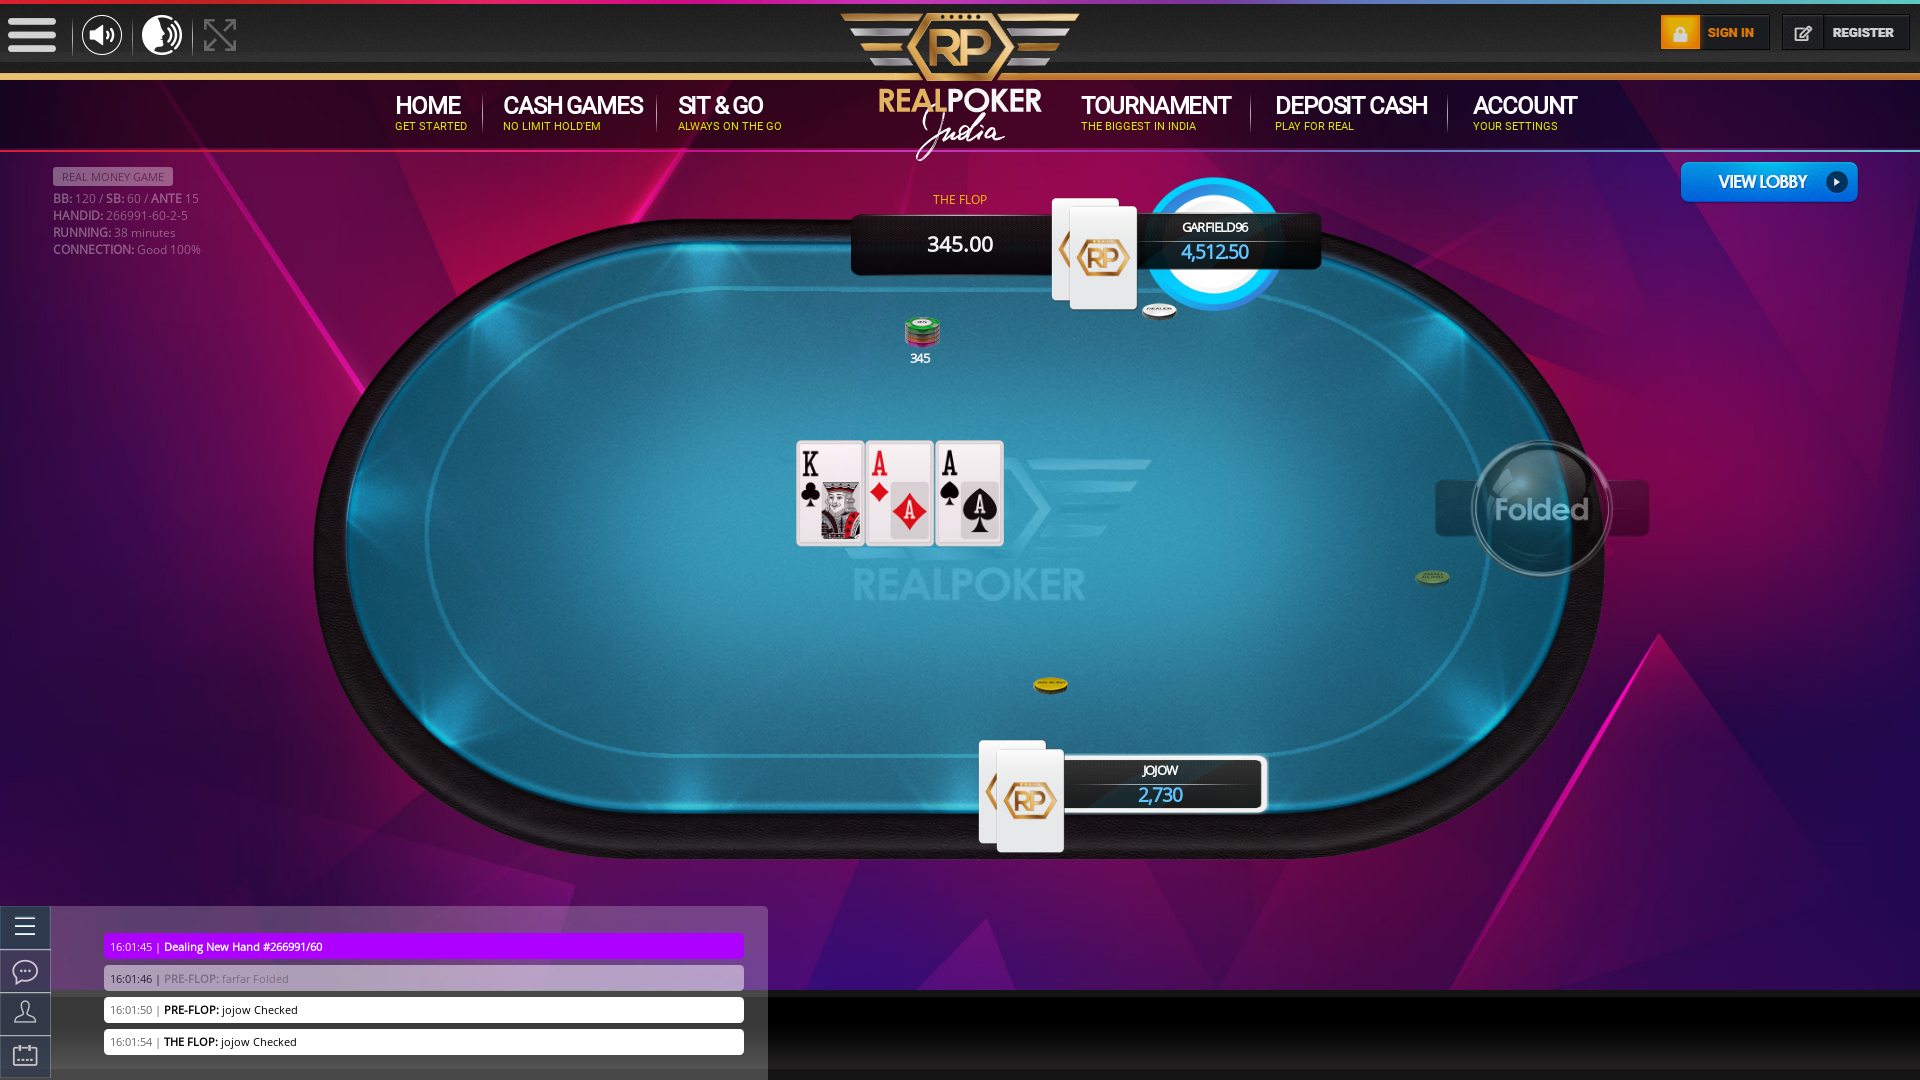 Indian online poker on a 10 player table in the 38th minute match up